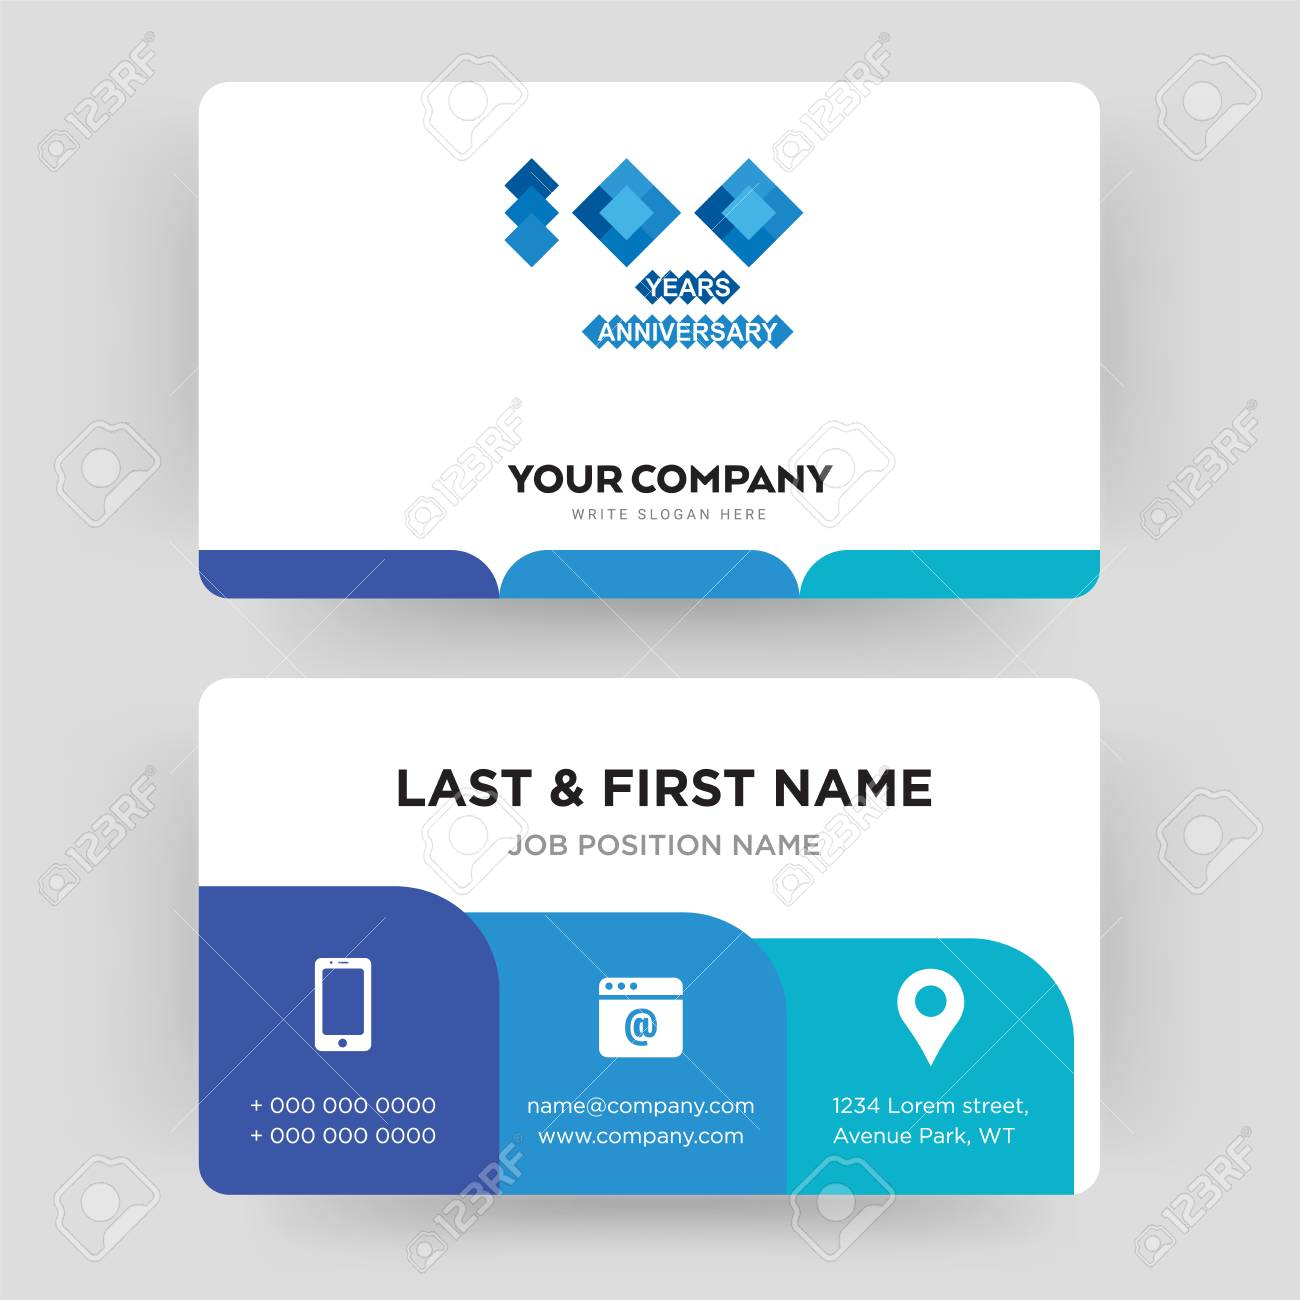 100 Year Anniversary Business Card Design Template Visiting